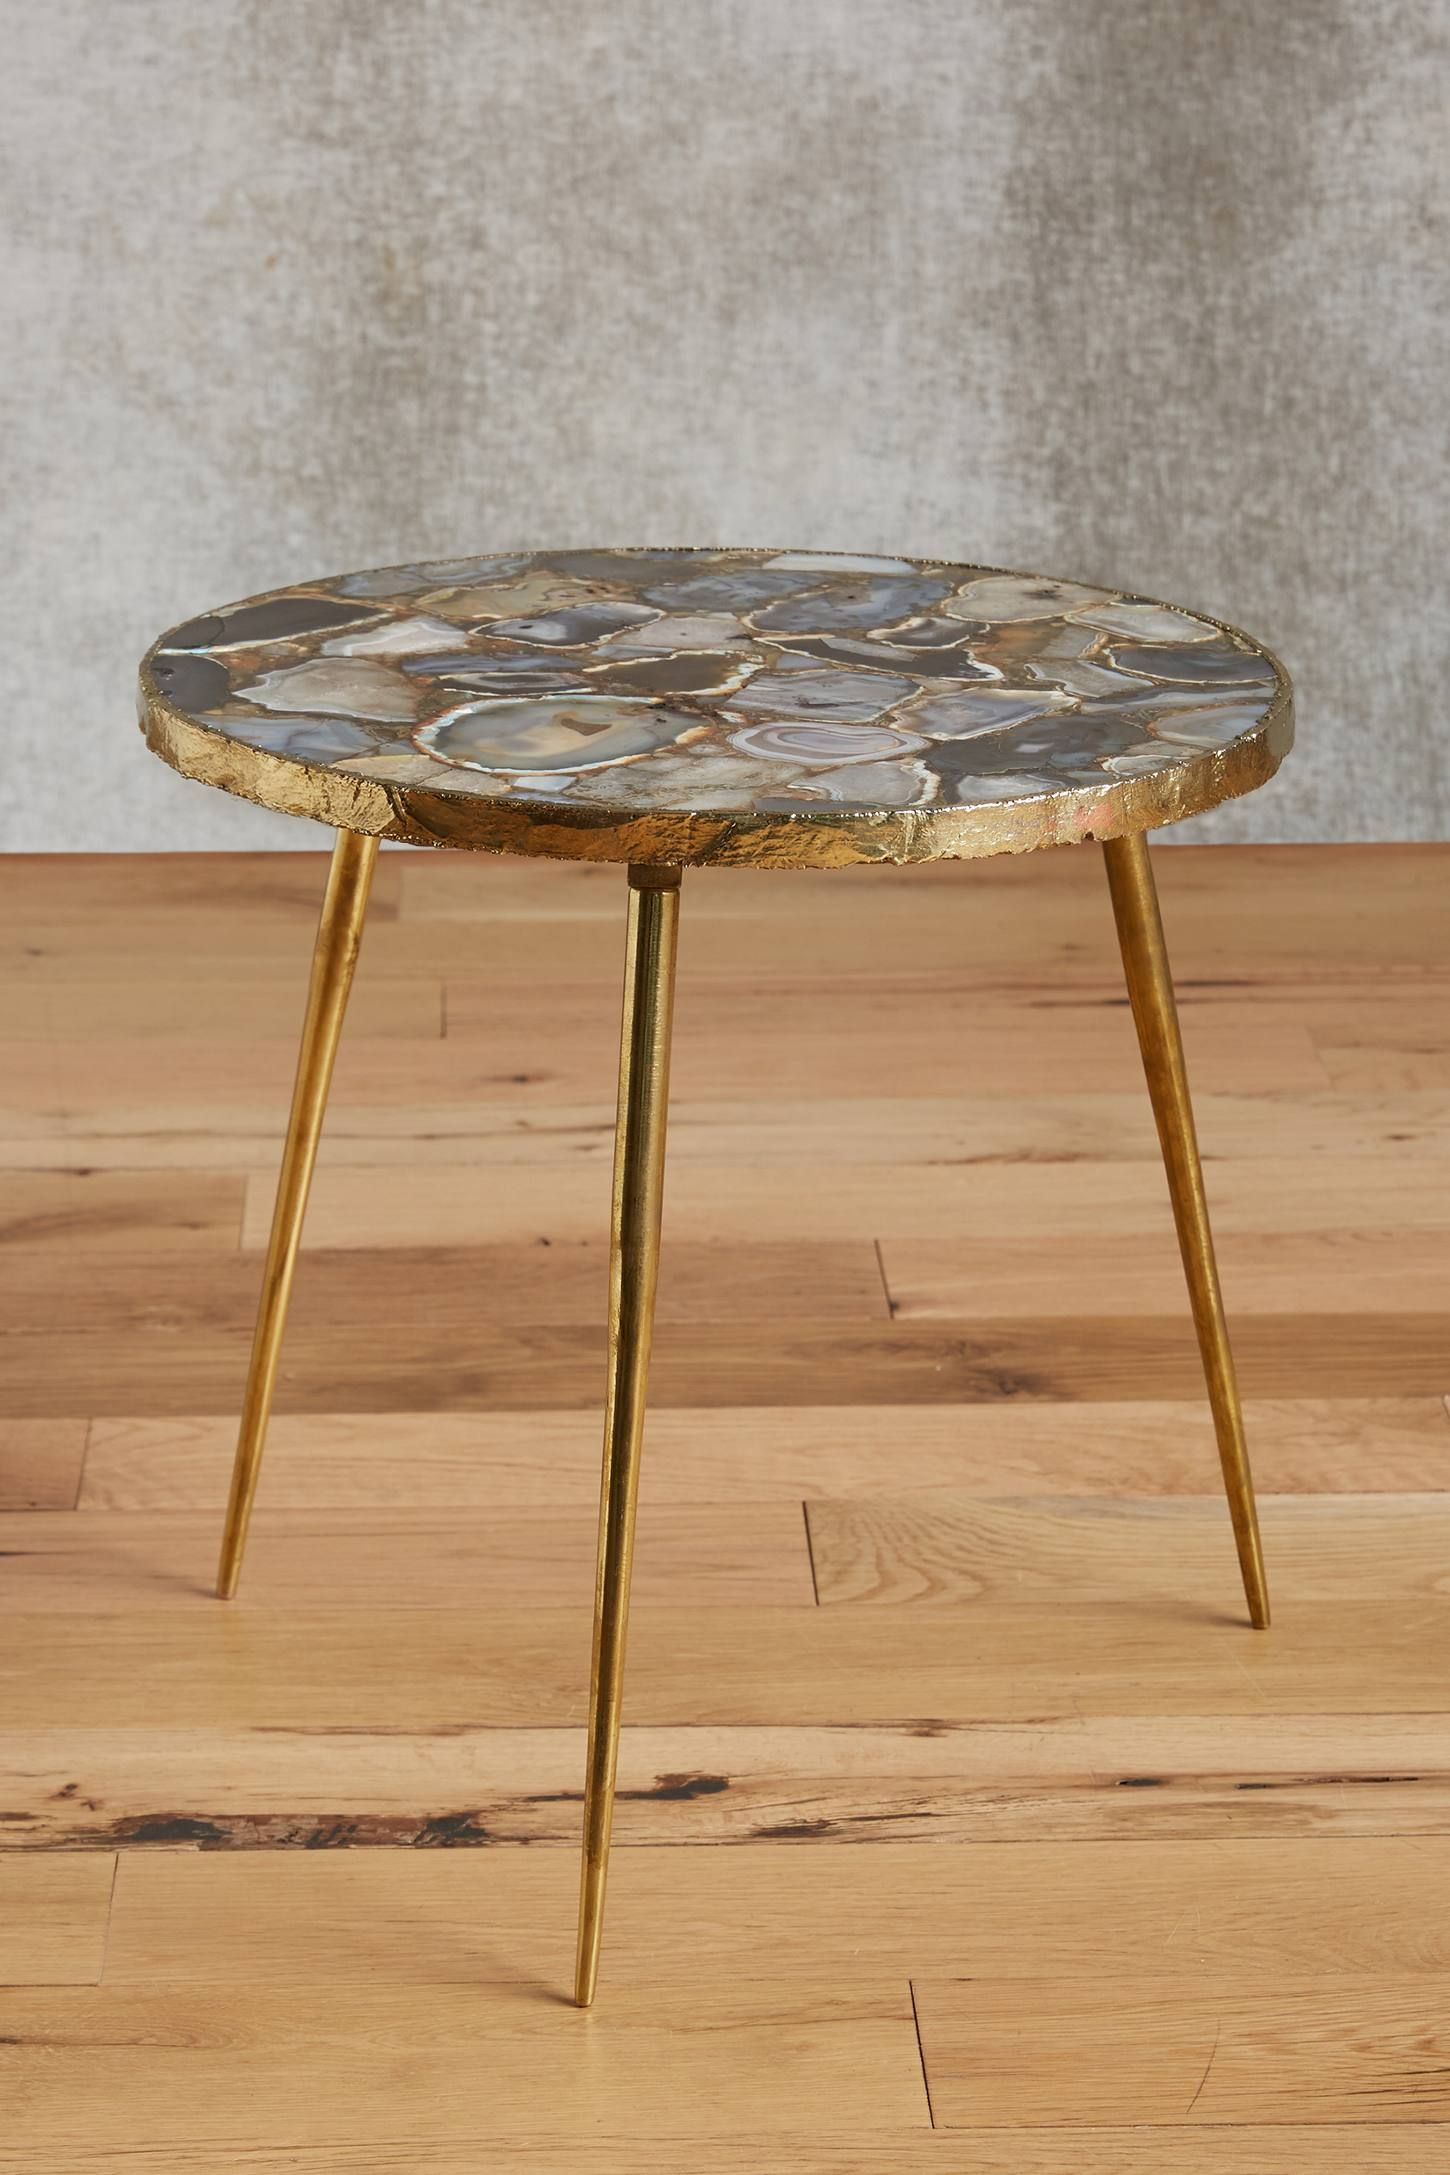 agate end table tables furniture accent the and more anthropologie today read customer reviews discover product details magnussen allure blue living room expandable uttermost dice